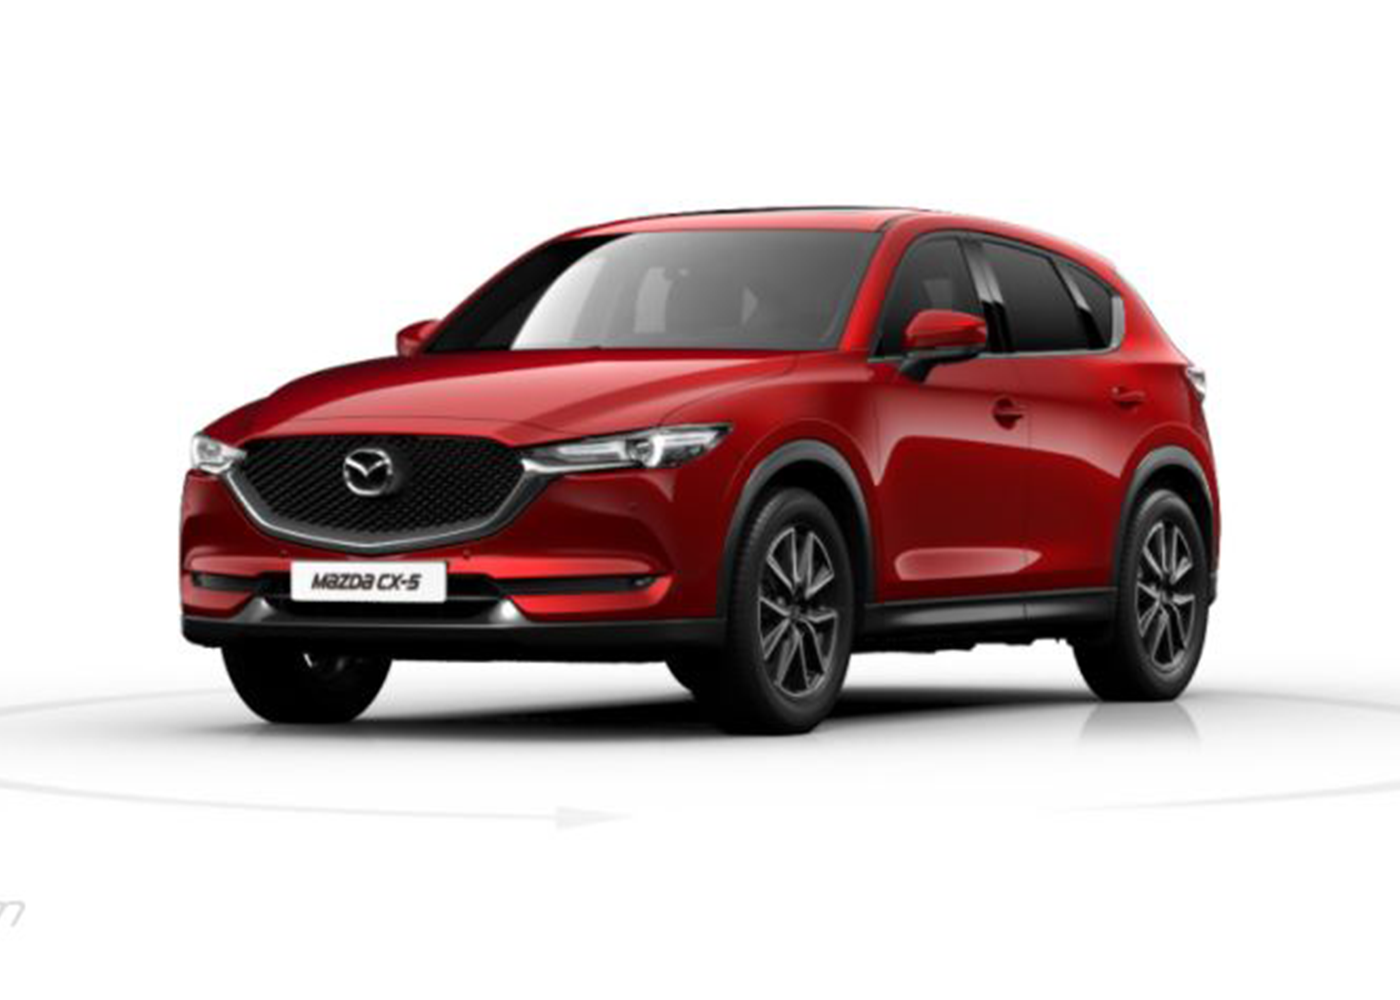 mazda cx 5 crystal soul red nuova a soli 37750 su miacar. Black Bedroom Furniture Sets. Home Design Ideas